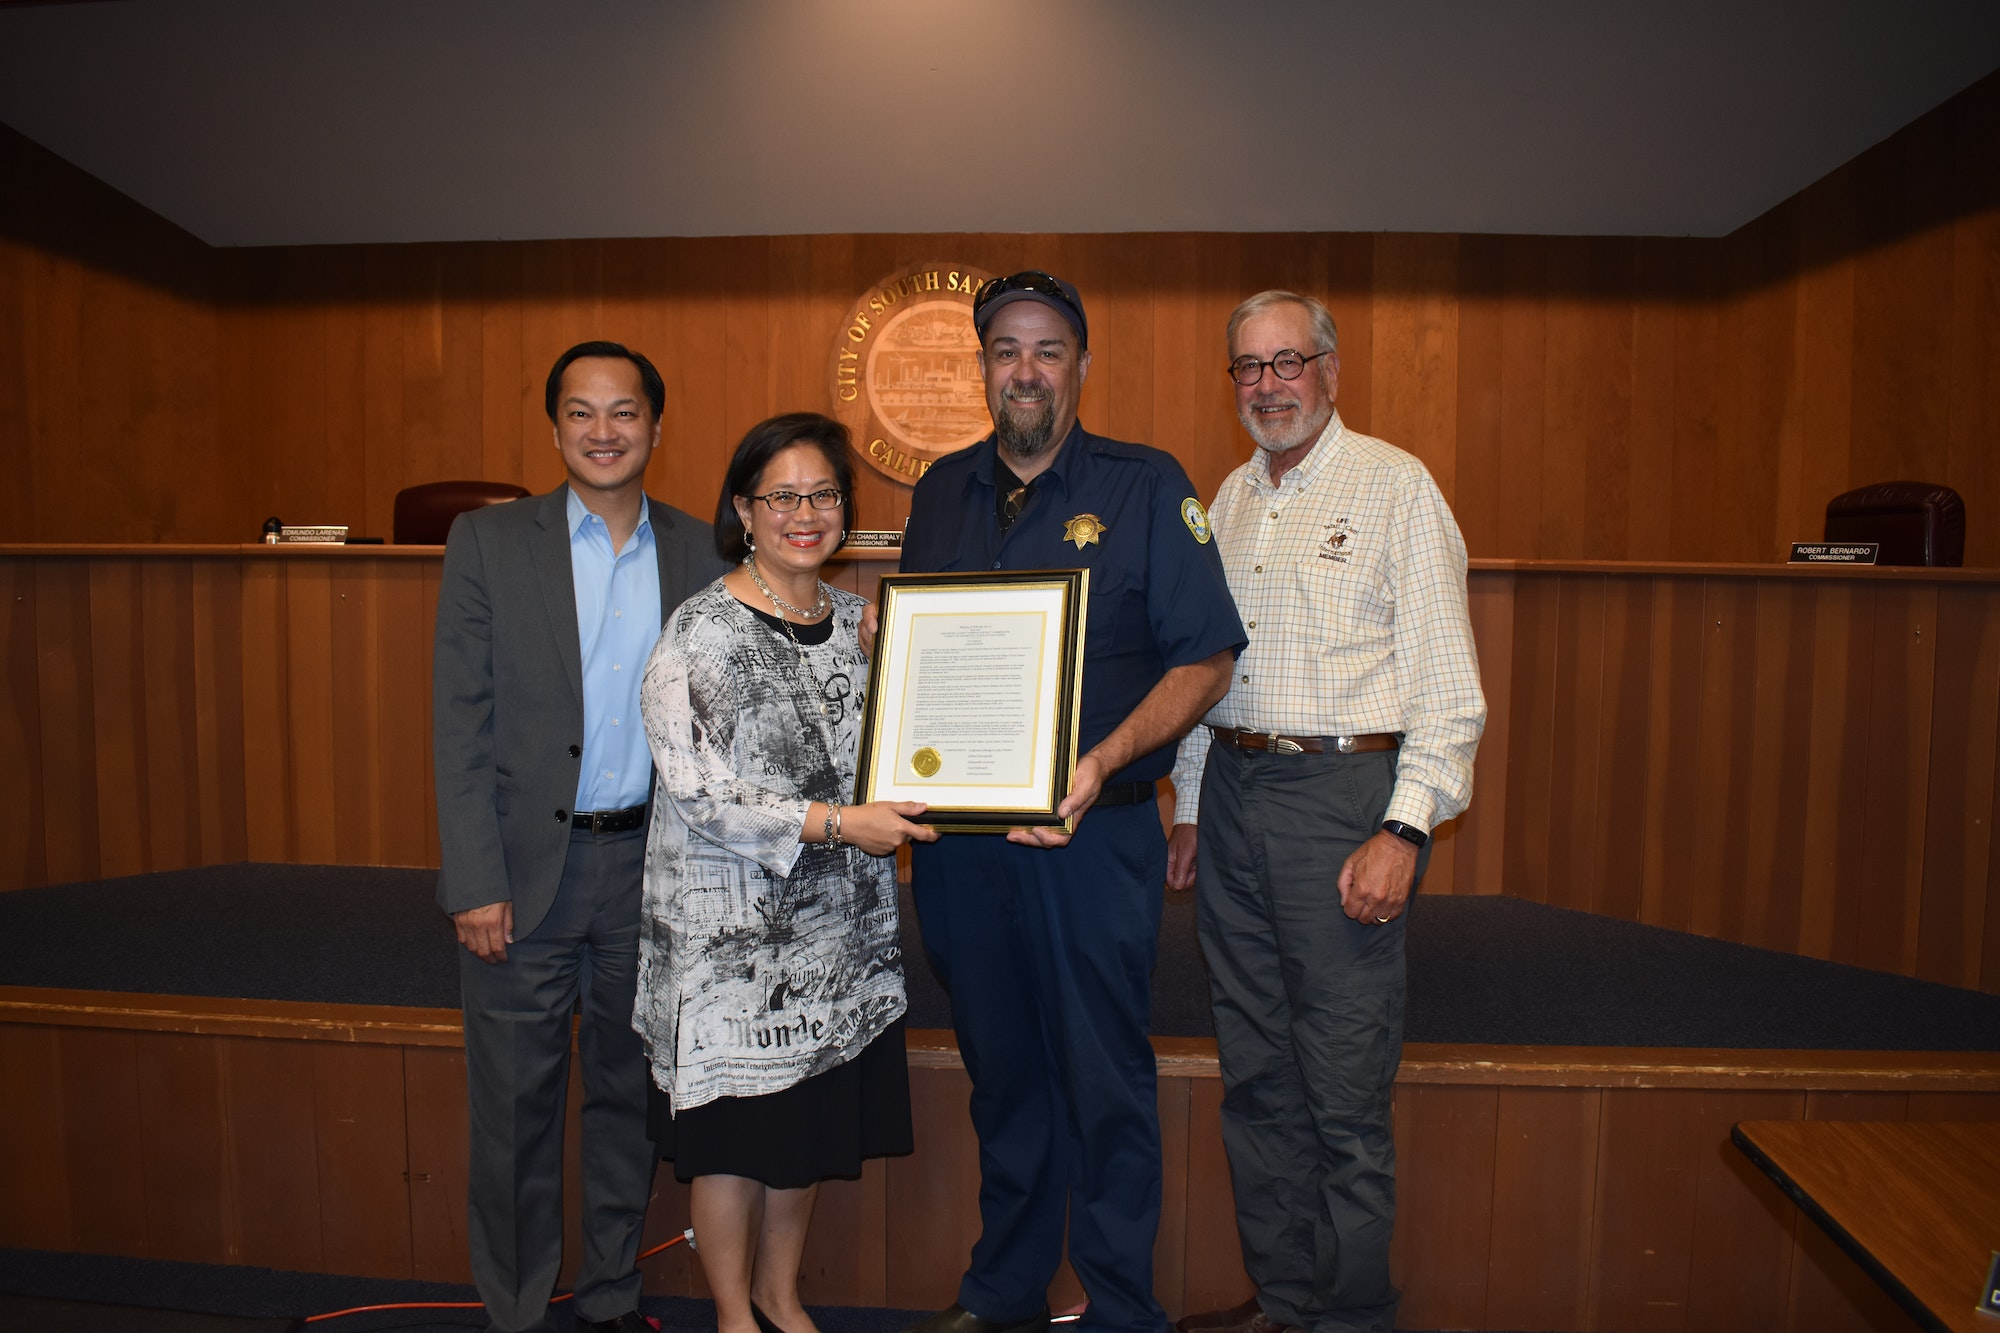 Commissioners with retiring Asst. Harbormaster John Draper